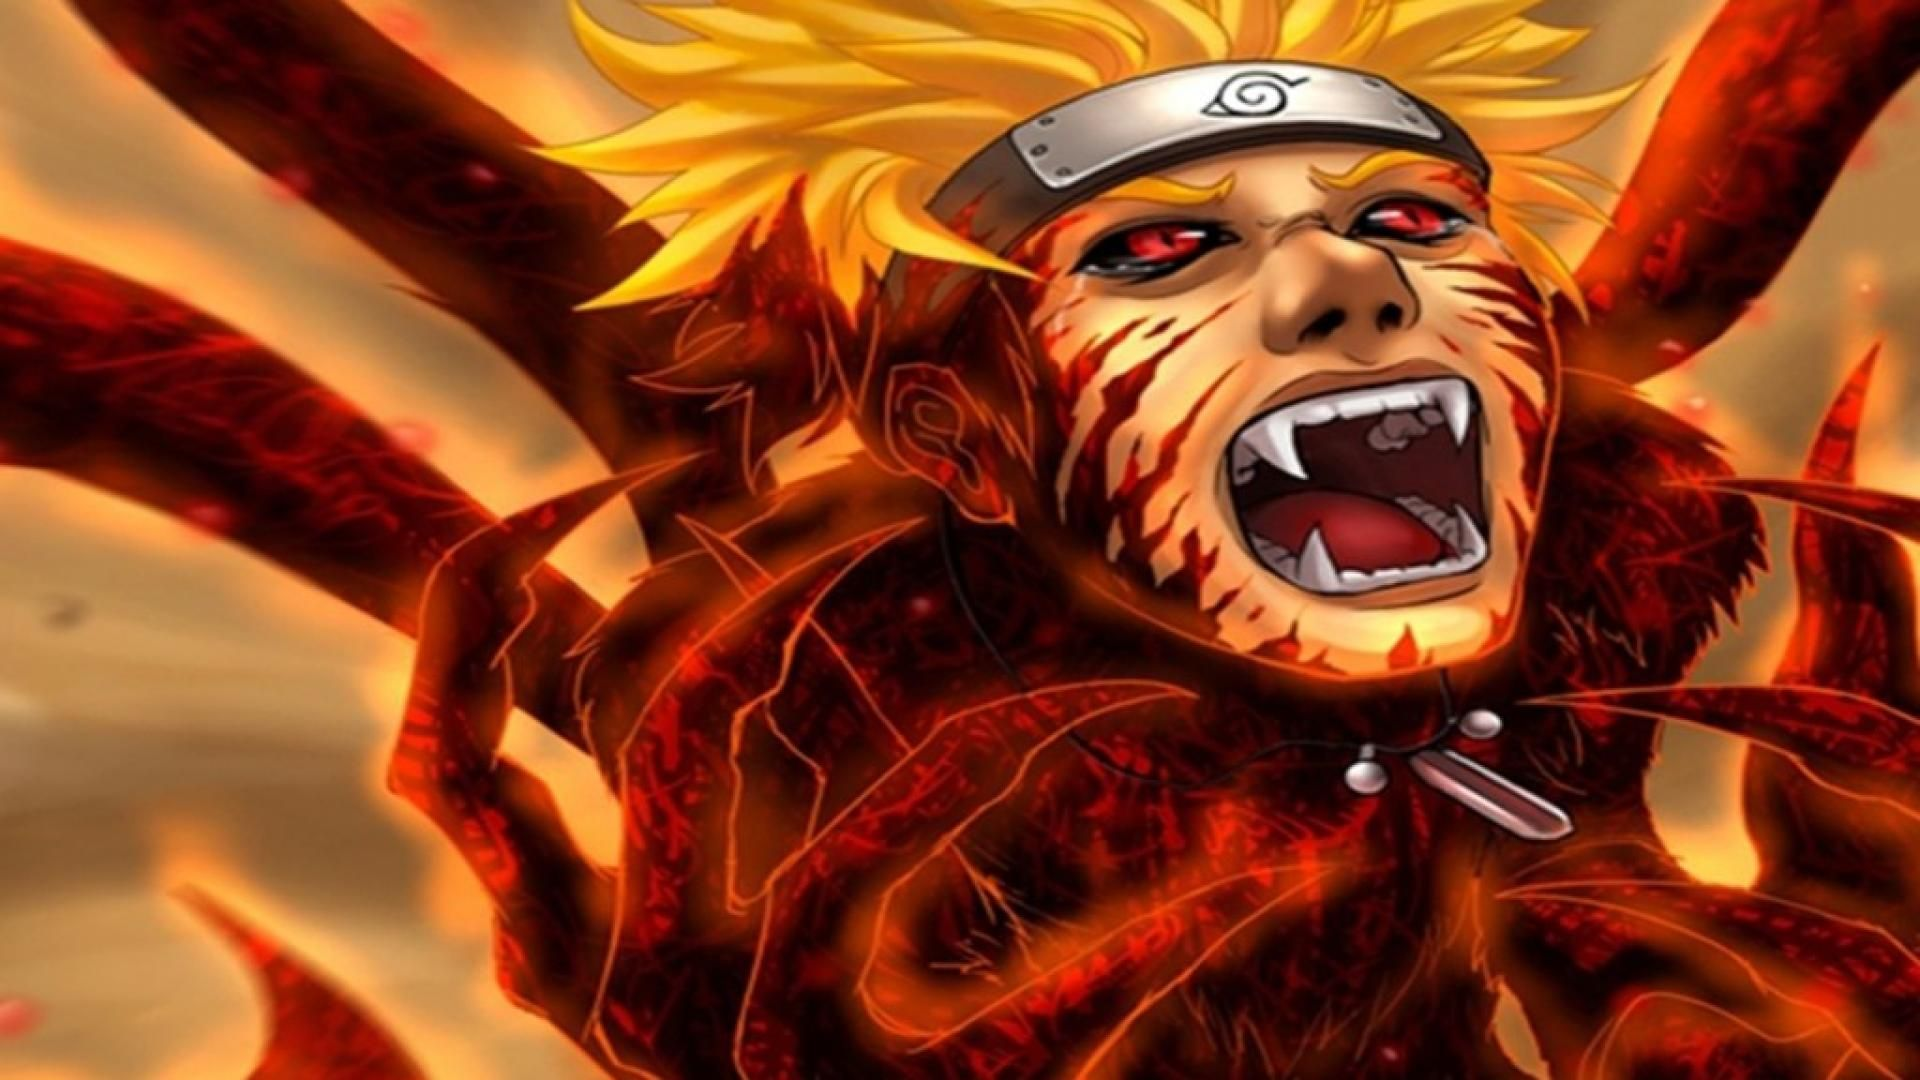 undefined Naruto HD Wallpapers Download (31 Wallpapers) | Adorable Wallpapers